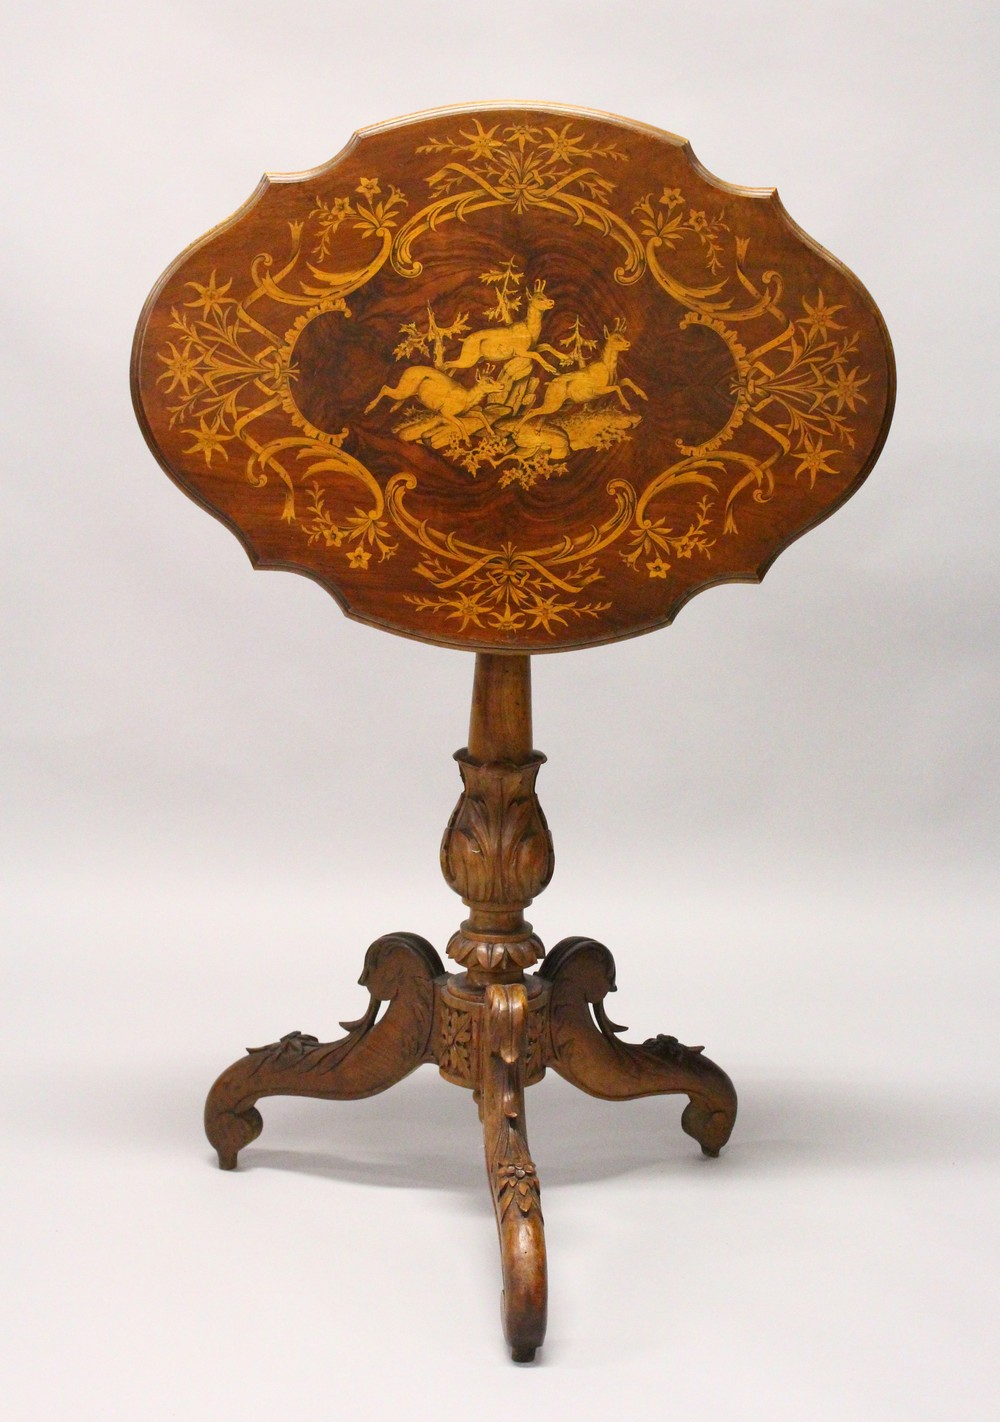 A LATE 19TH CENTURY BLACK FOREST INLAID TABLE. 2ft 1.5ins wide x 2ft 7ins high.